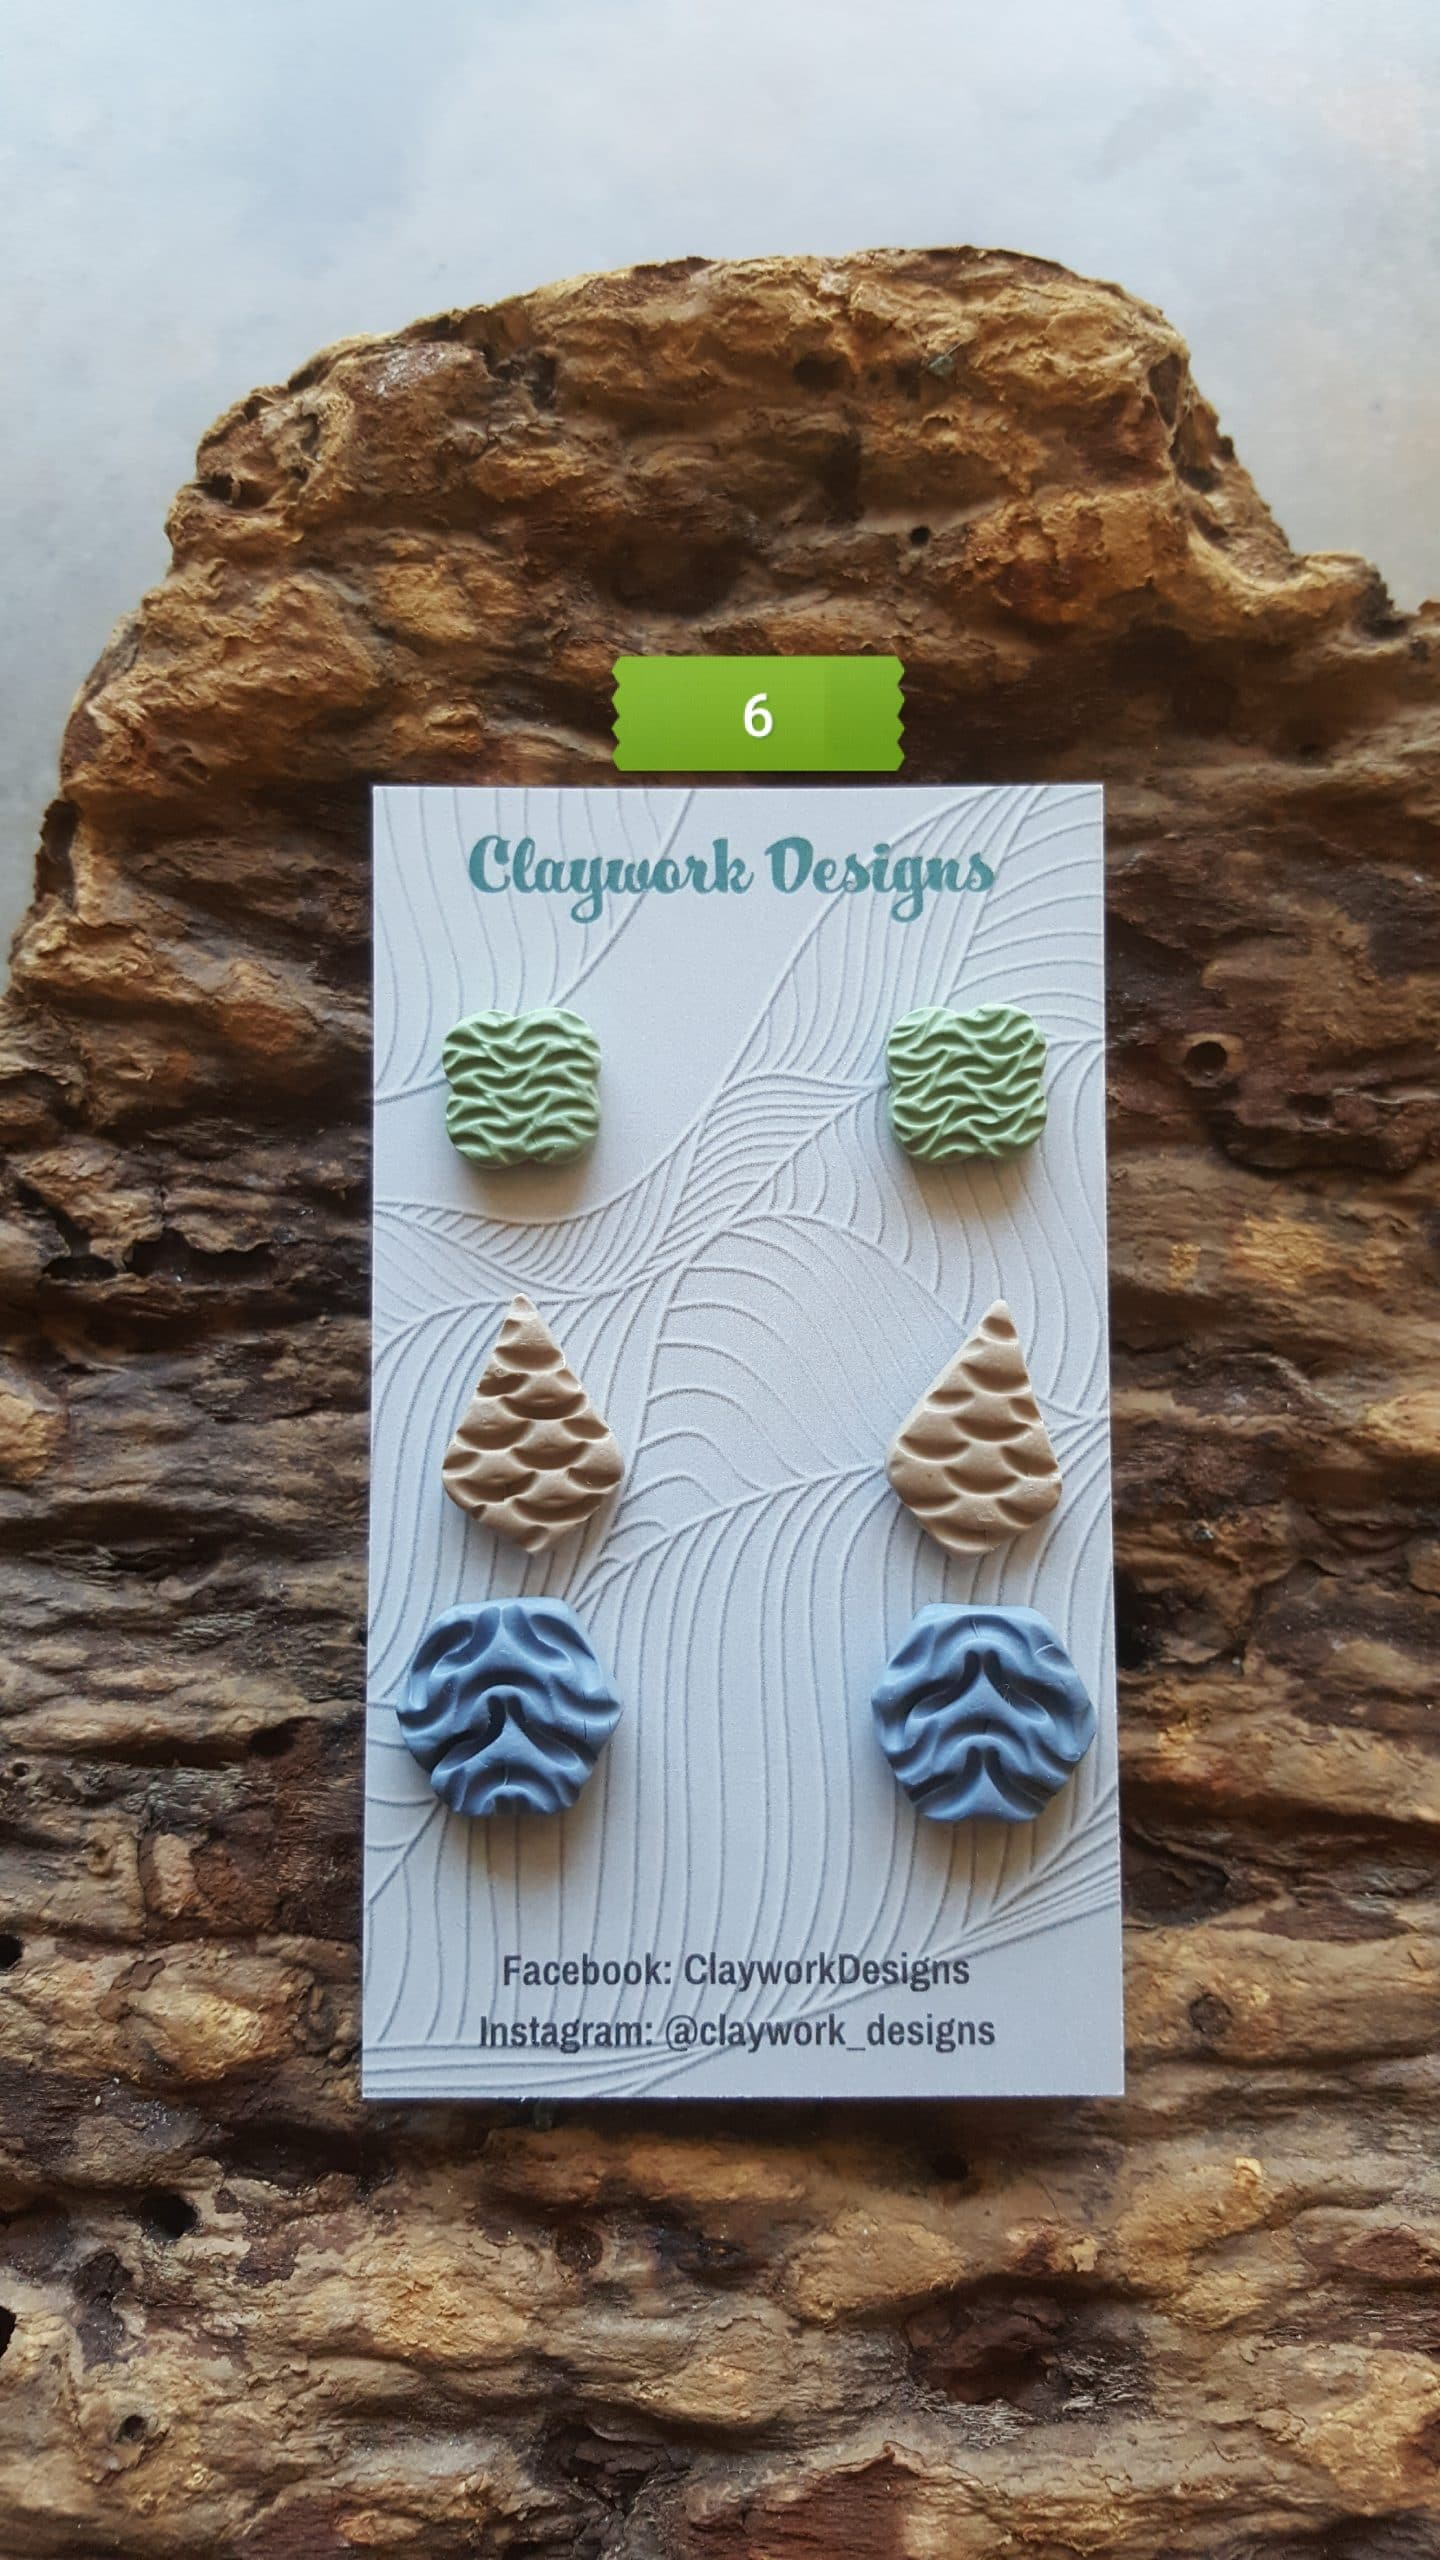 Wirework Designs | Handcrafted chainmaille jewellery and chainmaille products | Chainmaille Weave Stud Earring - 3 Packs | 20210620_172220